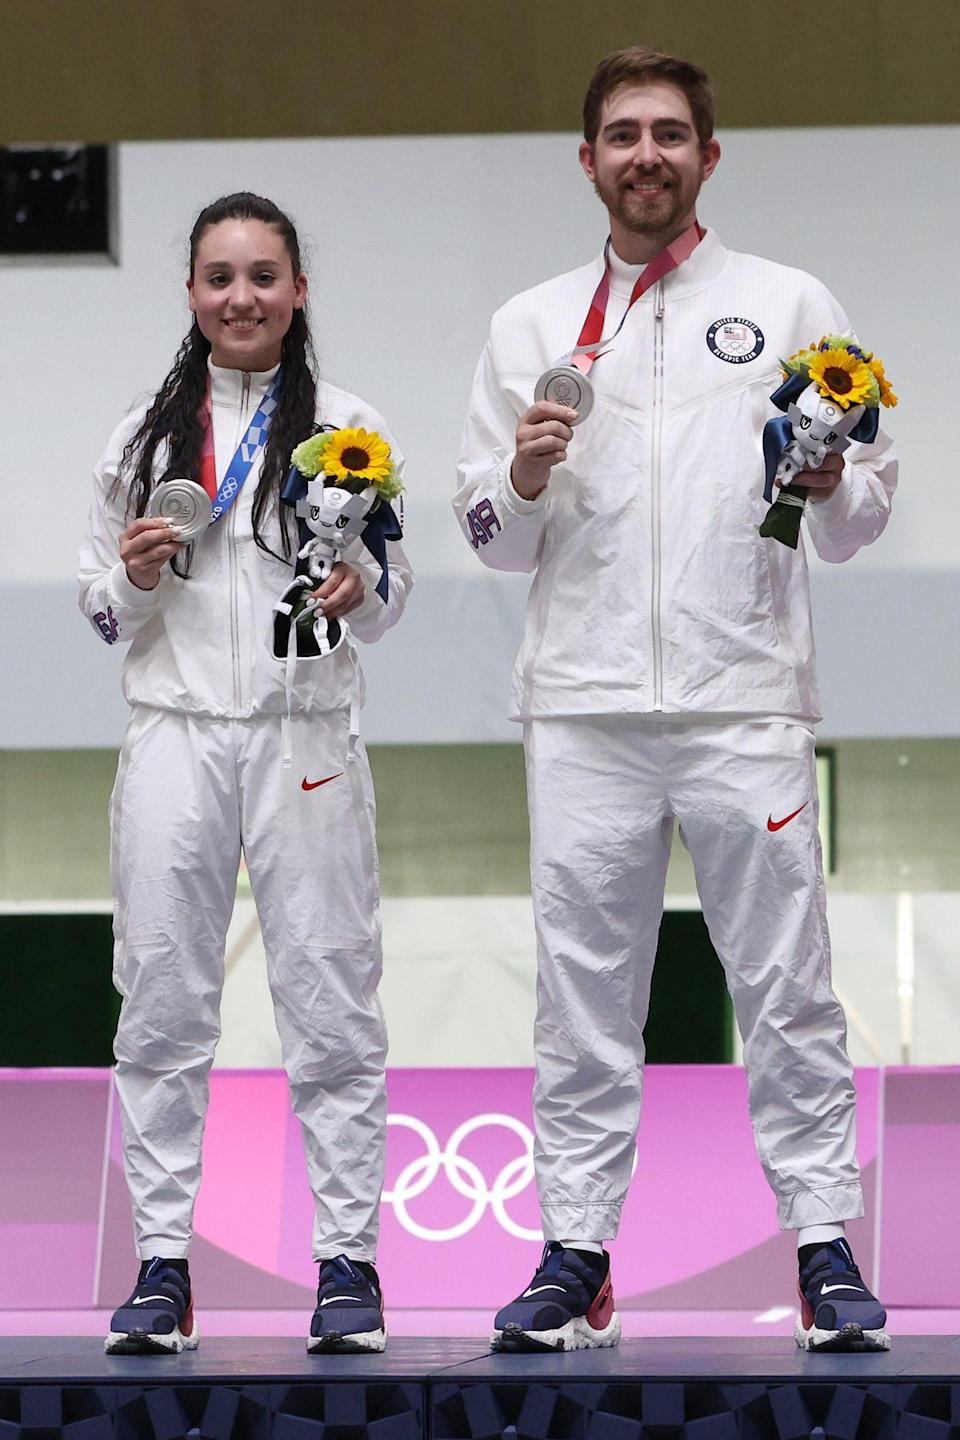 """<p>Biography: Tucker is 20 and Kozeniesky is 26</p> <p>Event: 10m air rifle mixed team</p> <p>Quote: Kozeniesky: """"The first thing [that went through my mind] is that it's heavy. Thud. Five years of work, done."""" </p>"""